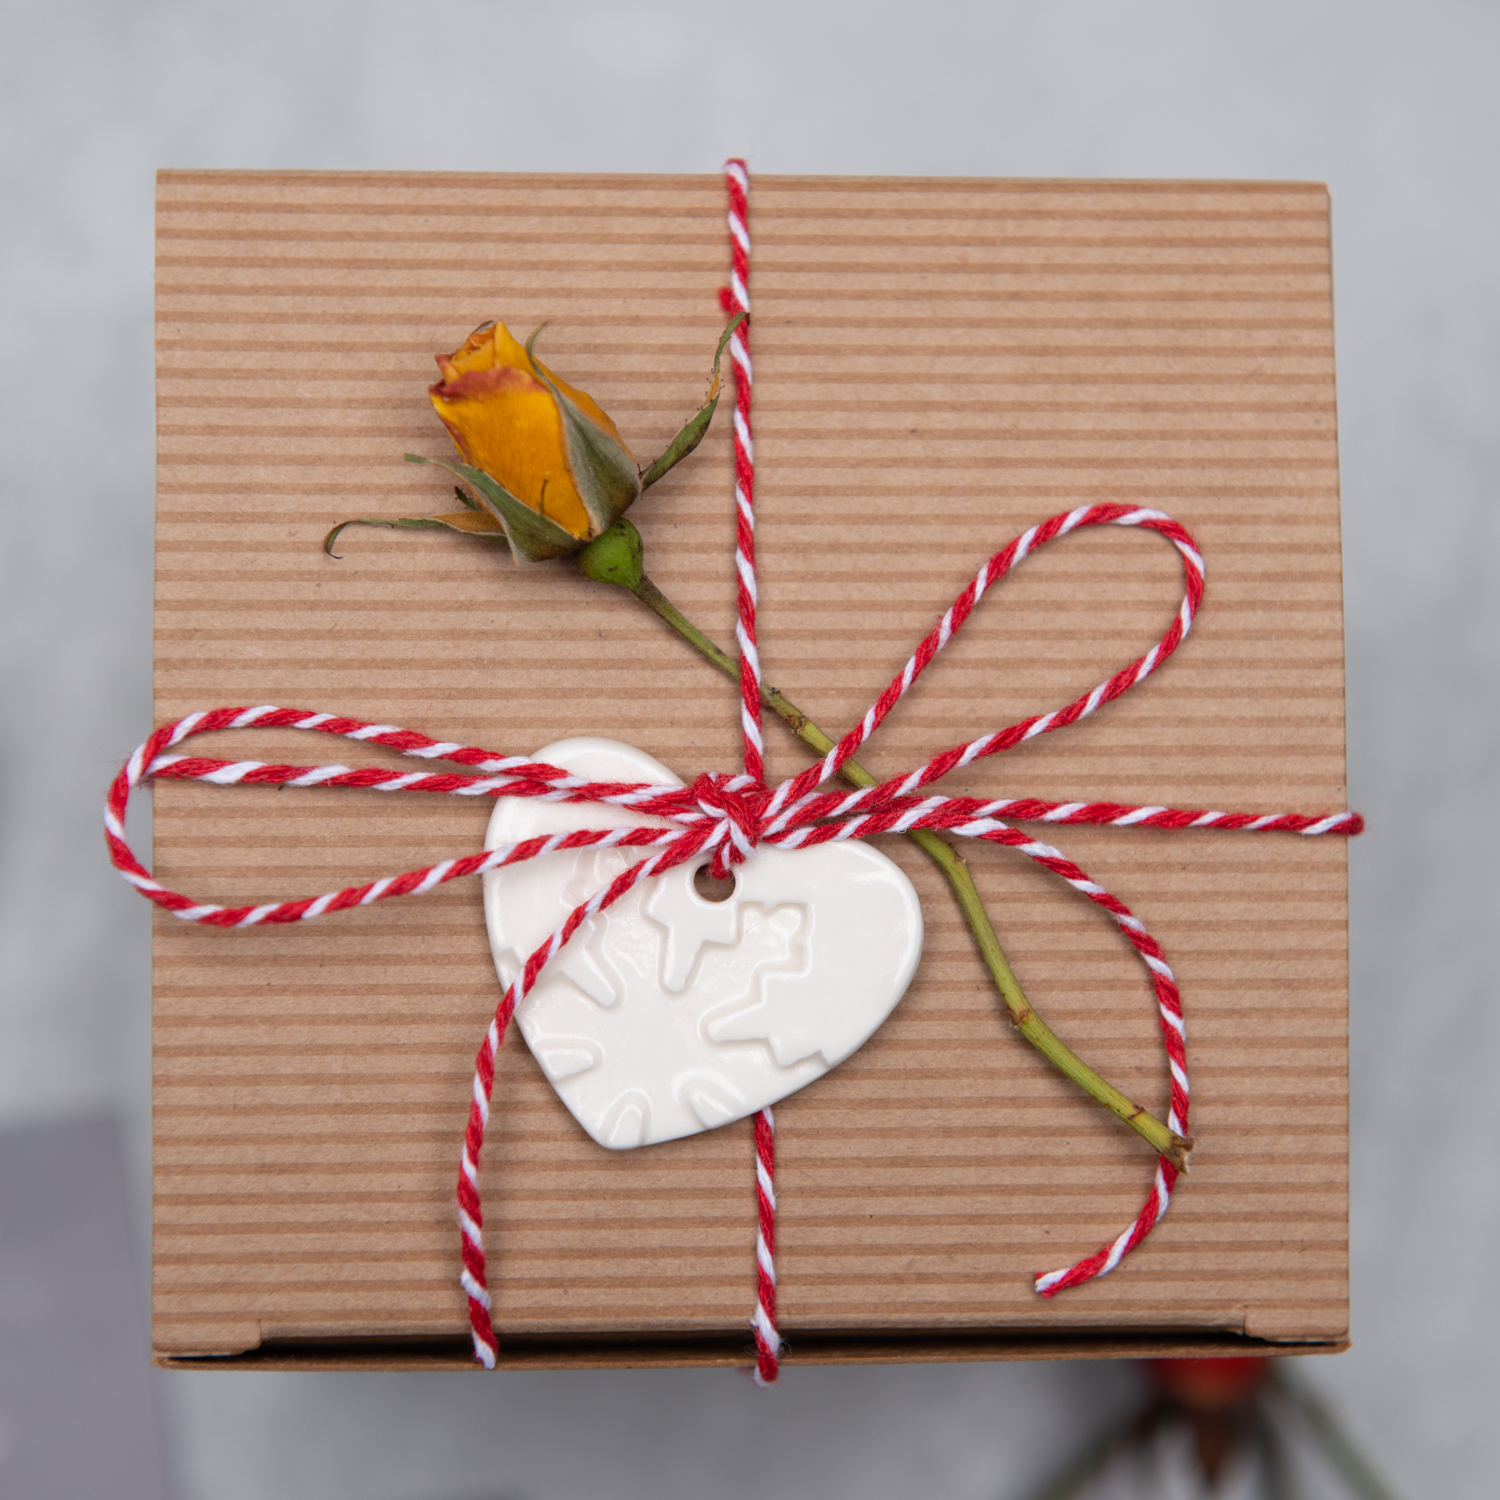 Pianca Ceramics - thoughtful sustainable gifts